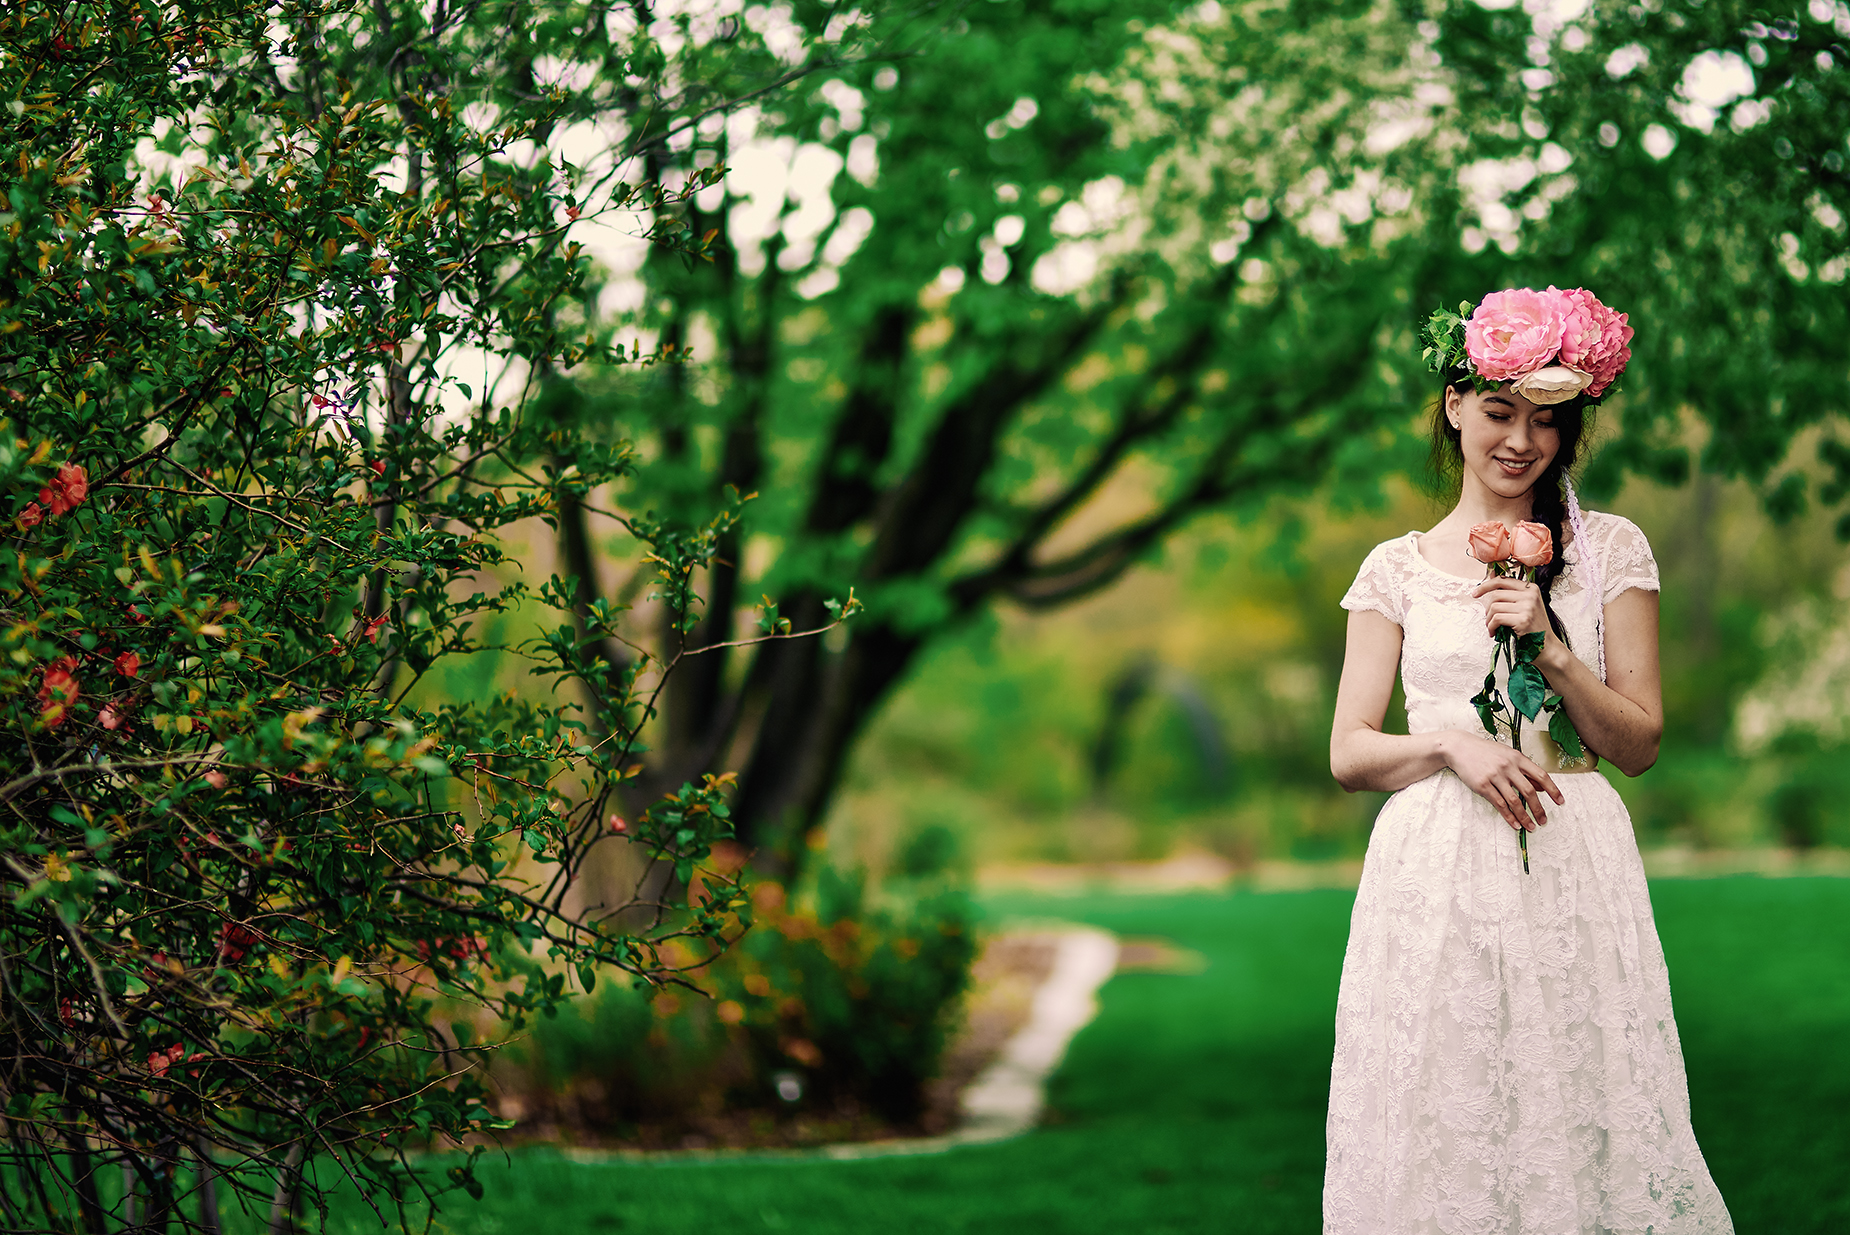 Springtime Wedding Inspiration - BRIDAL FASHION PHOTOGRAPHY